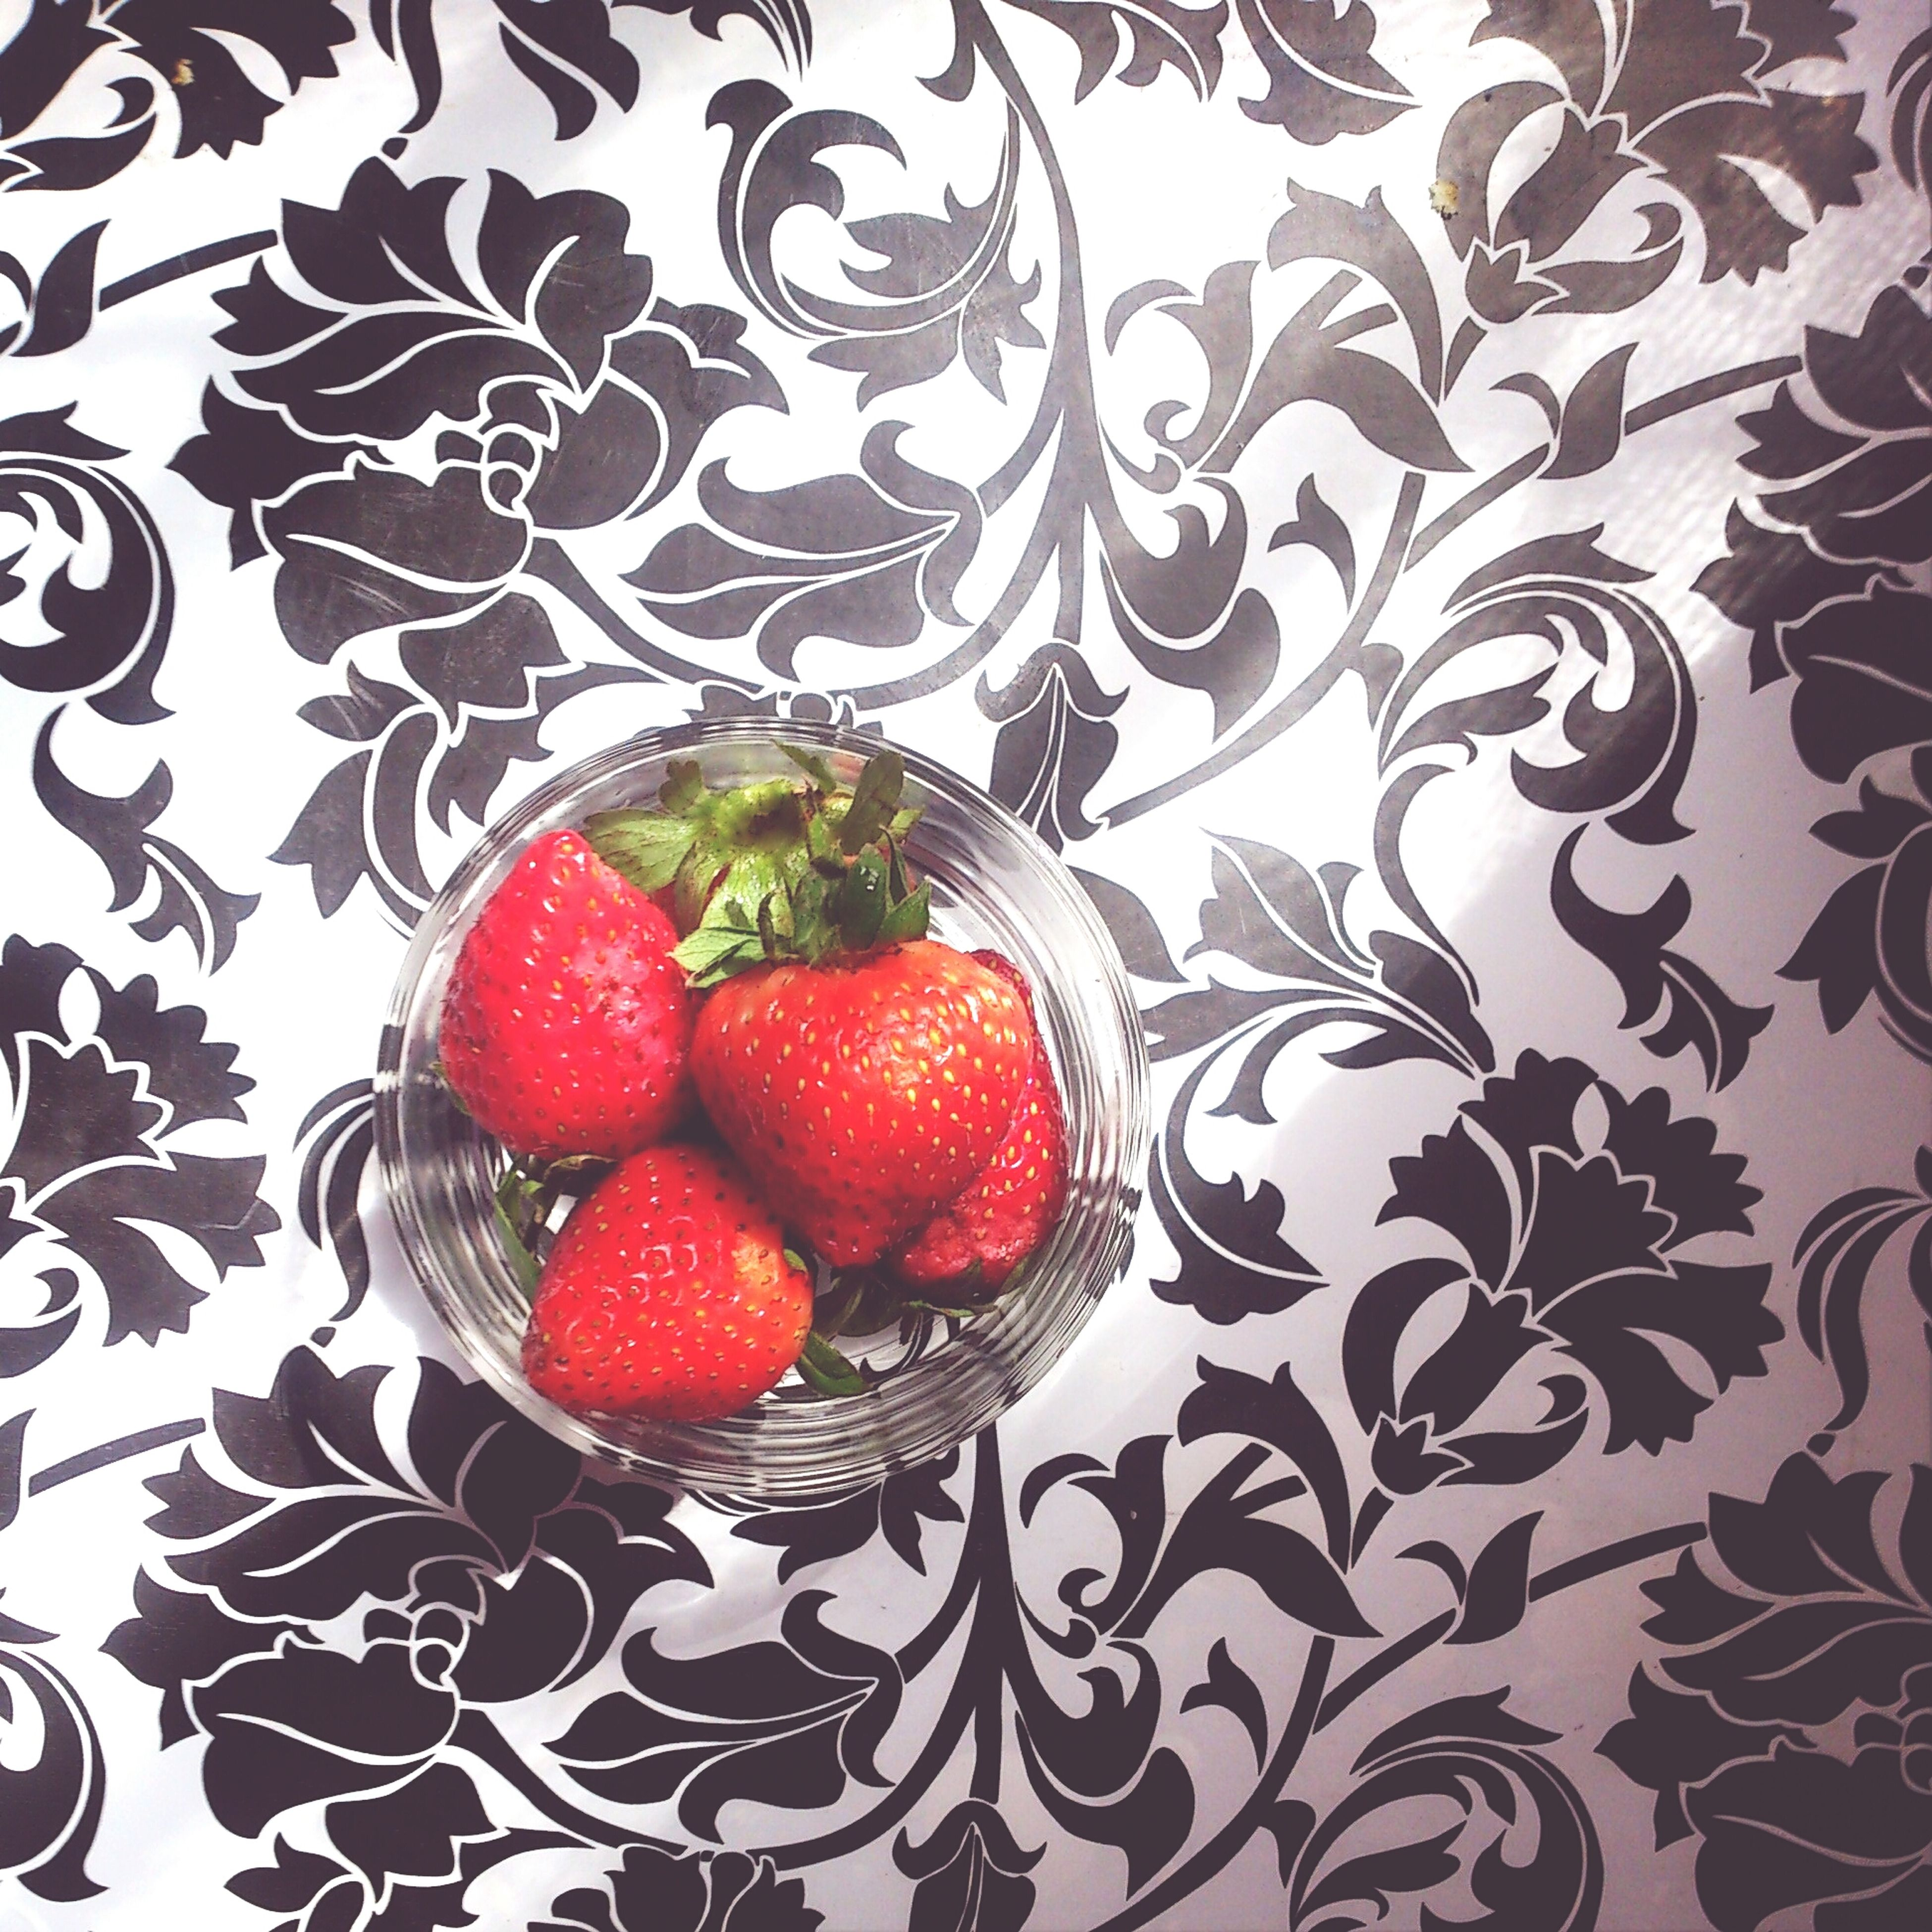 food and drink, fruit, indoors, red, food, table, freshness, healthy eating, still life, strawberry, high angle view, bowl, plate, directly above, no people, berry fruit, pattern, close-up, sweet food, cherry